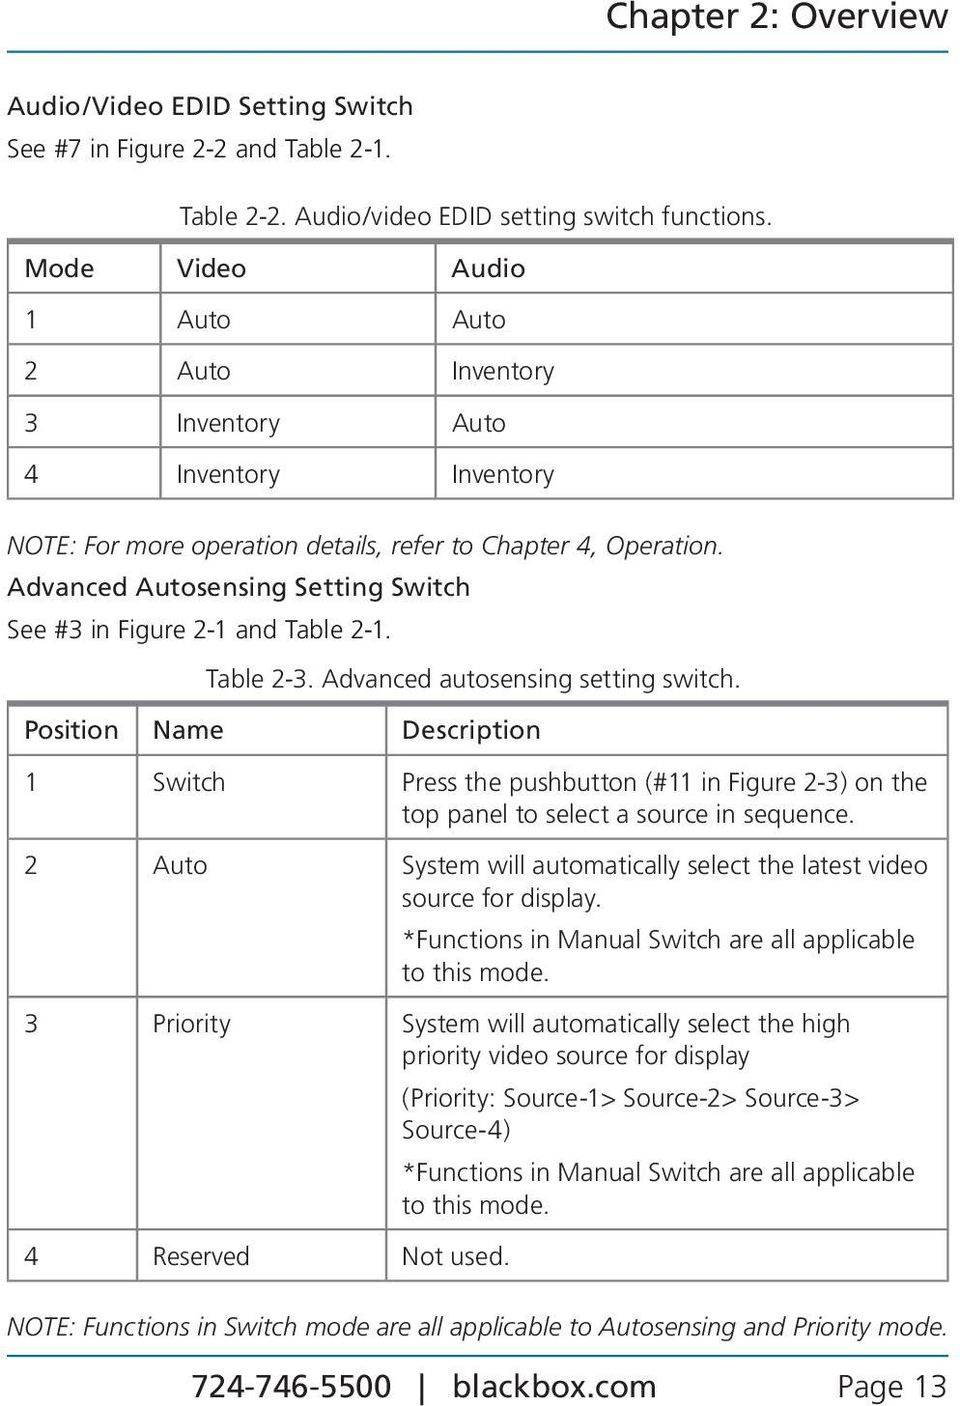 Advanced Autosensing Setting Switch See #3 in Figure 2-1 and Table 2-1. Table 2-3. Advanced autosensing setting switch.